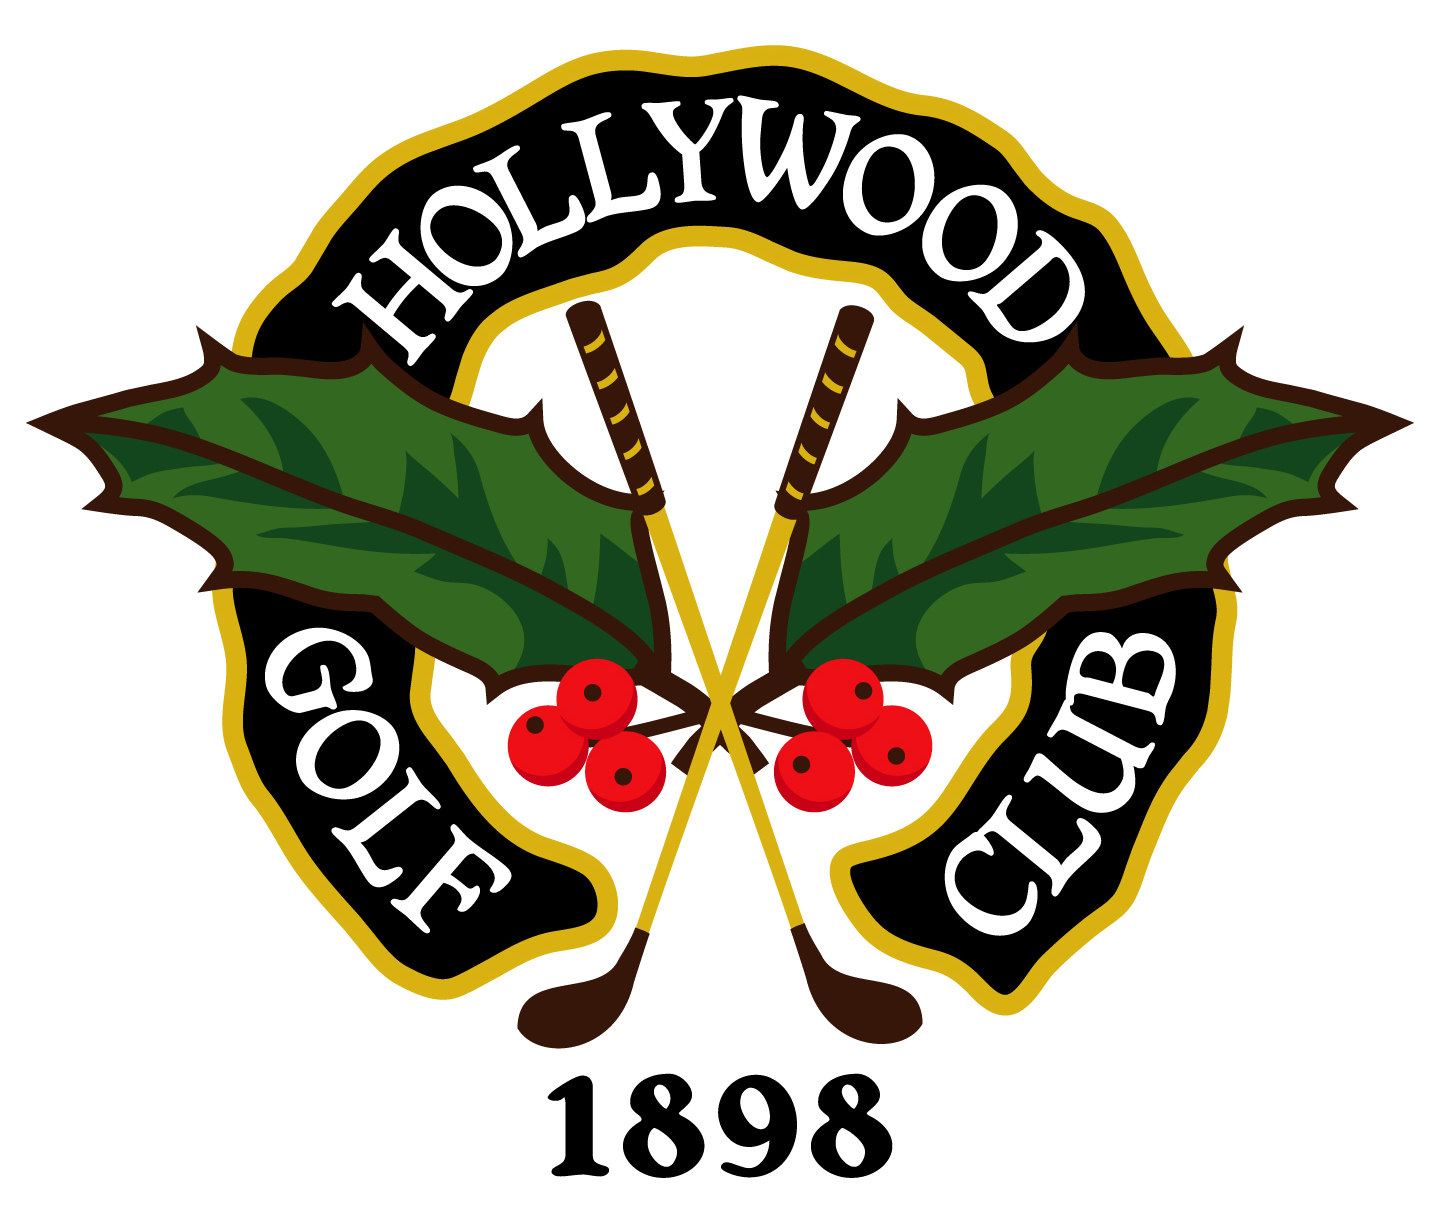 HOLLYWOOD-GC_LOGO-2012.jpg